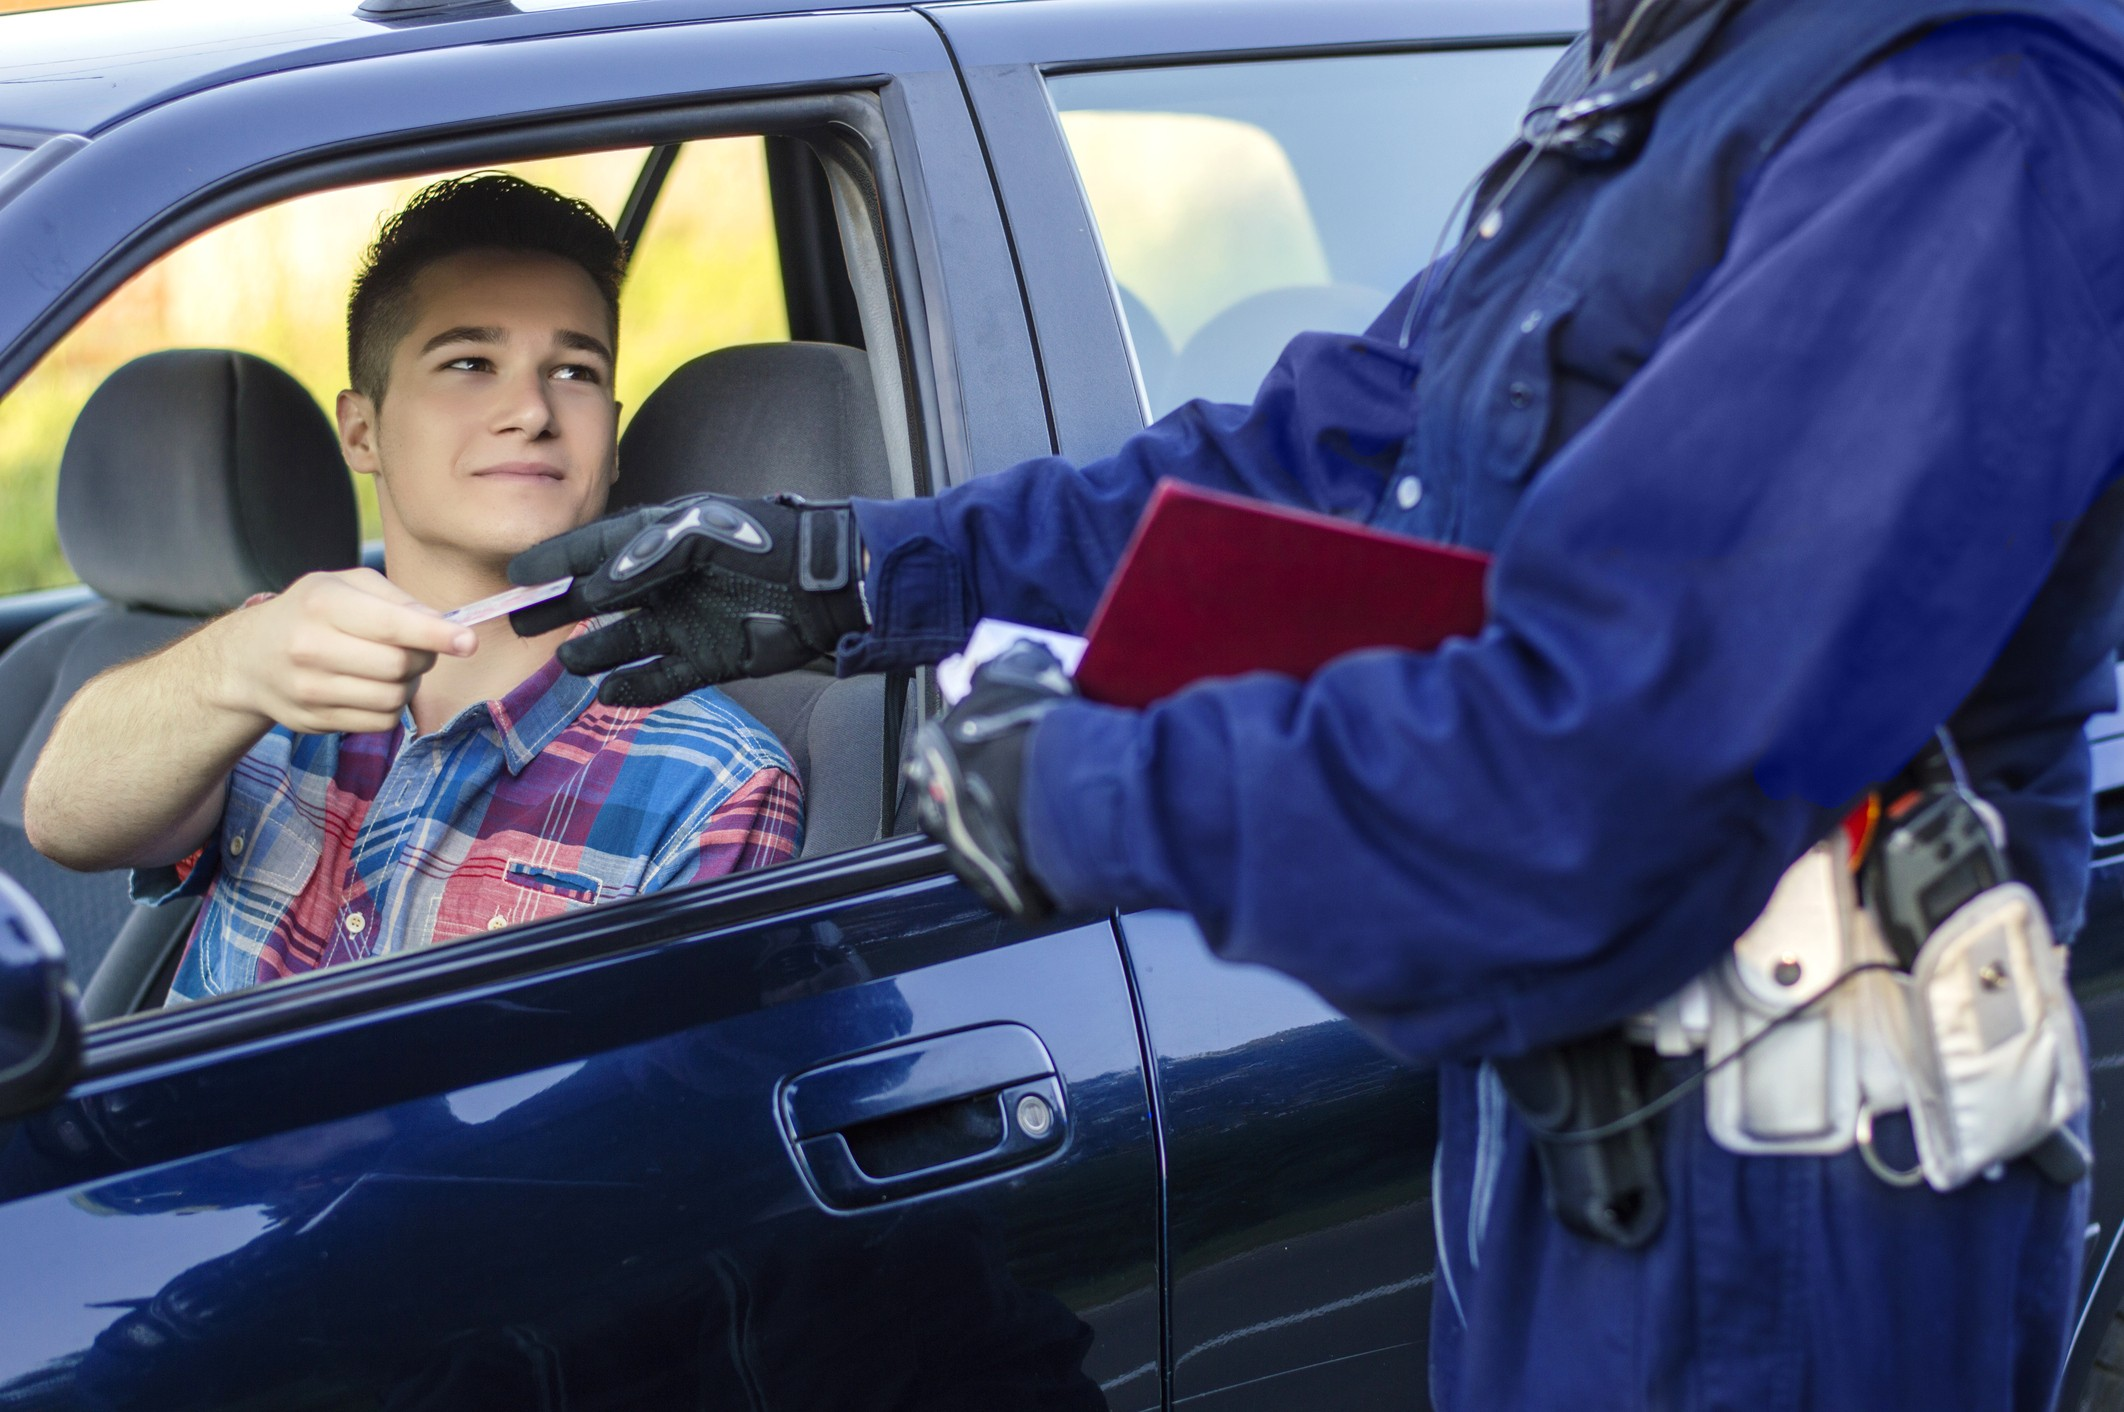 Young man handing over identification during a police stop